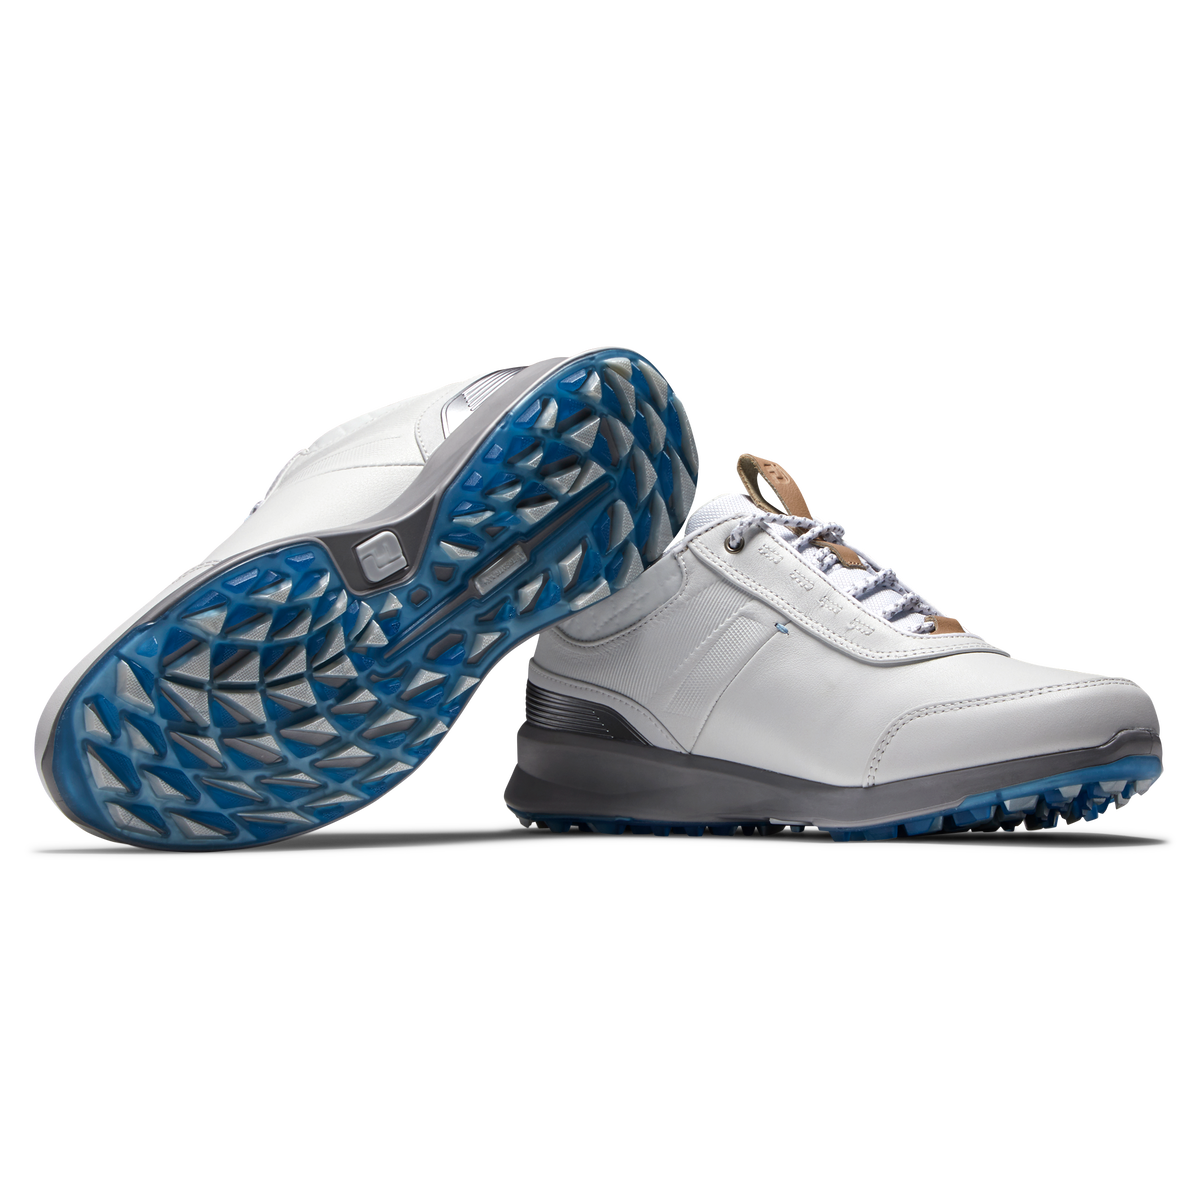 FJ Stratos Women